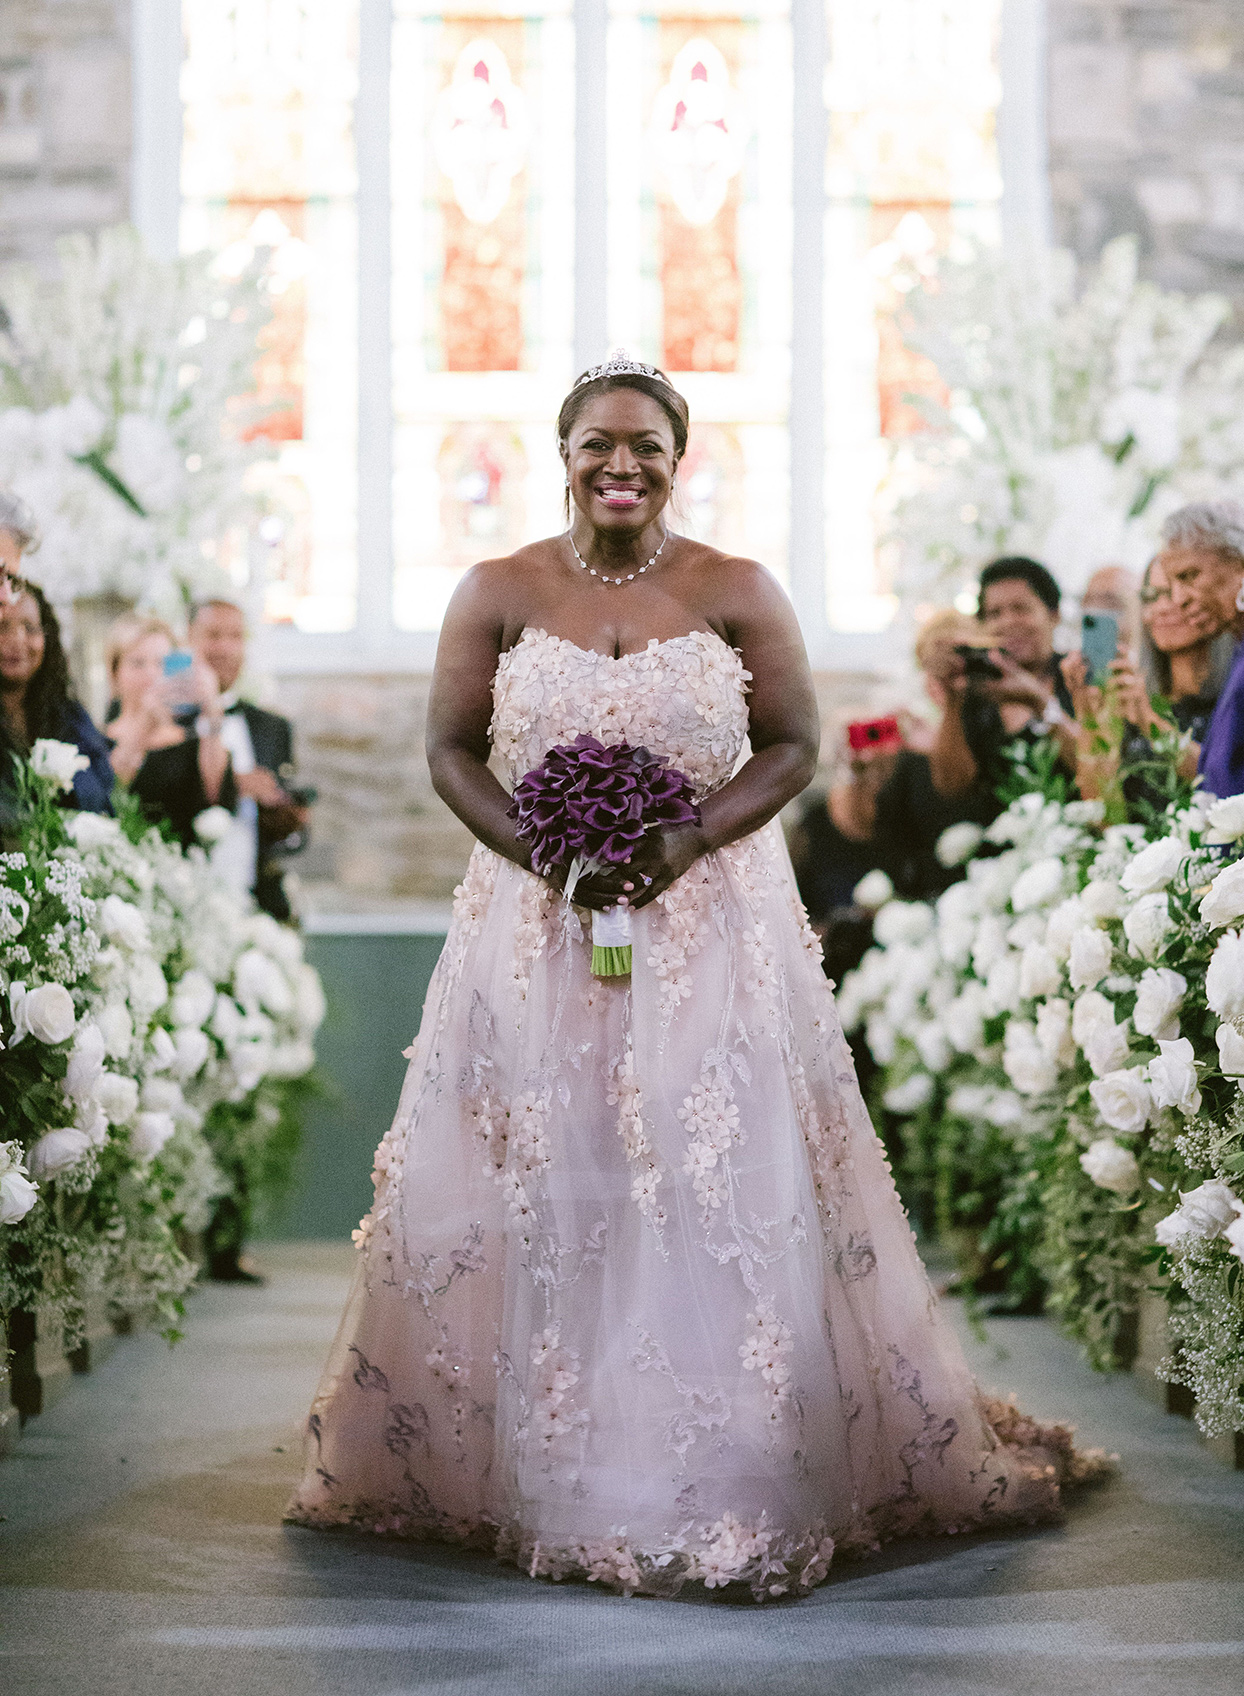 bride walking down aisle in pastel pink and purple floral wedding dress